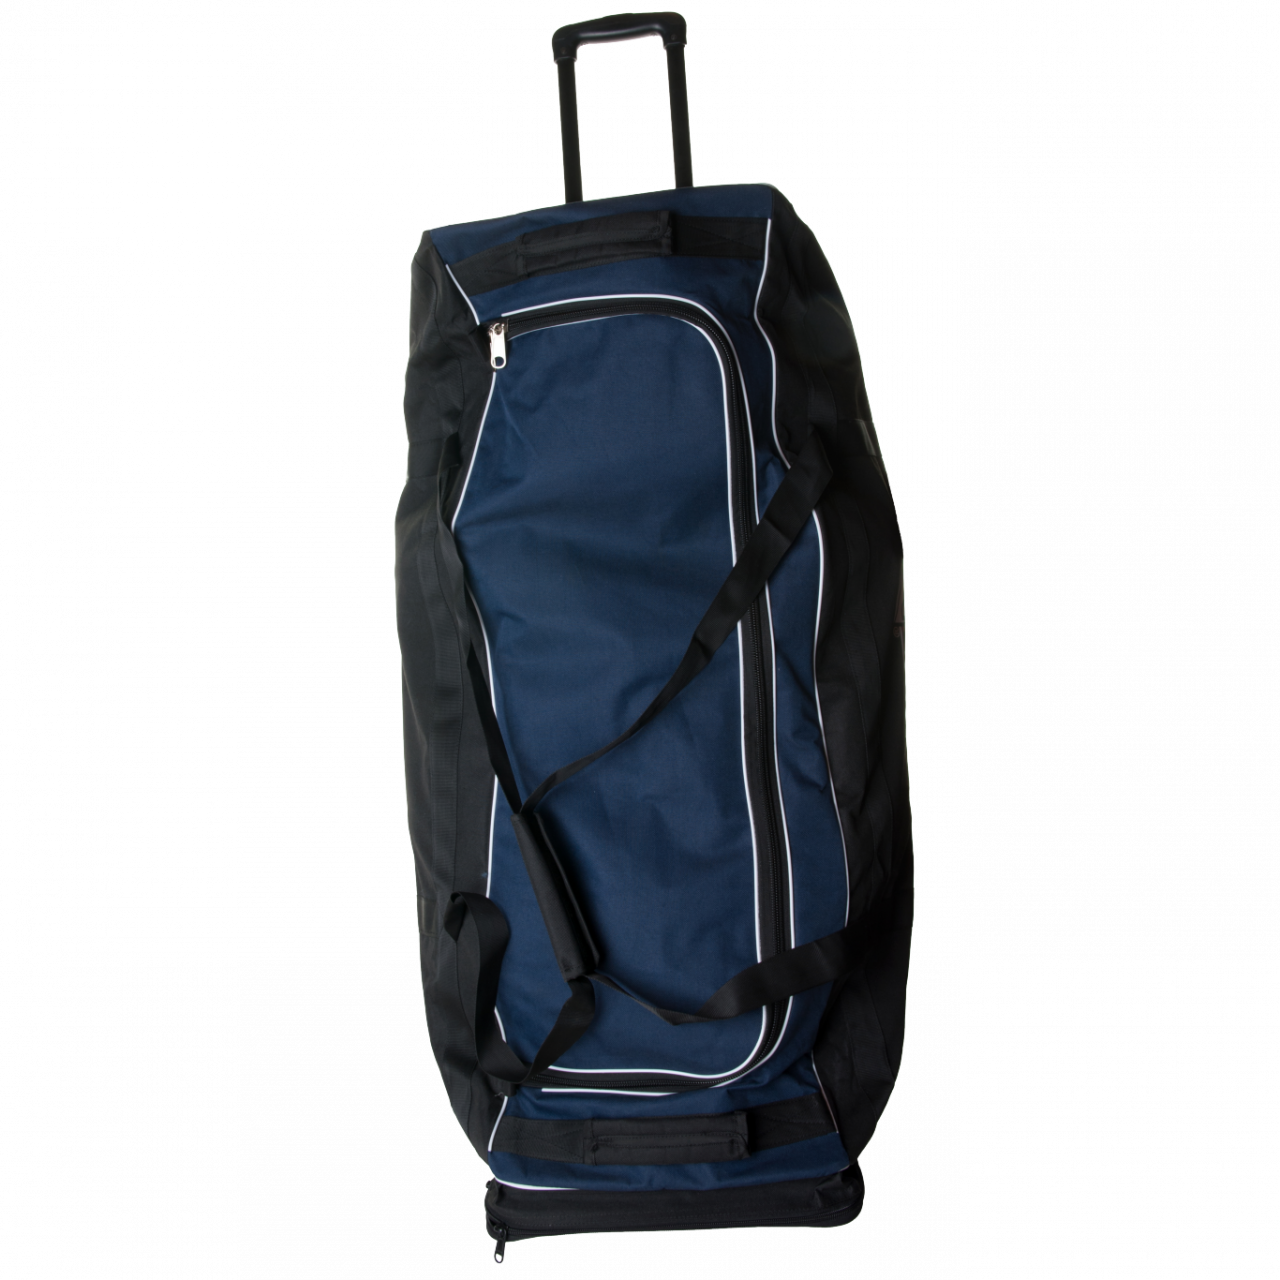 Kit Bag On Wheels Team Football Kit Bag Diamond Football